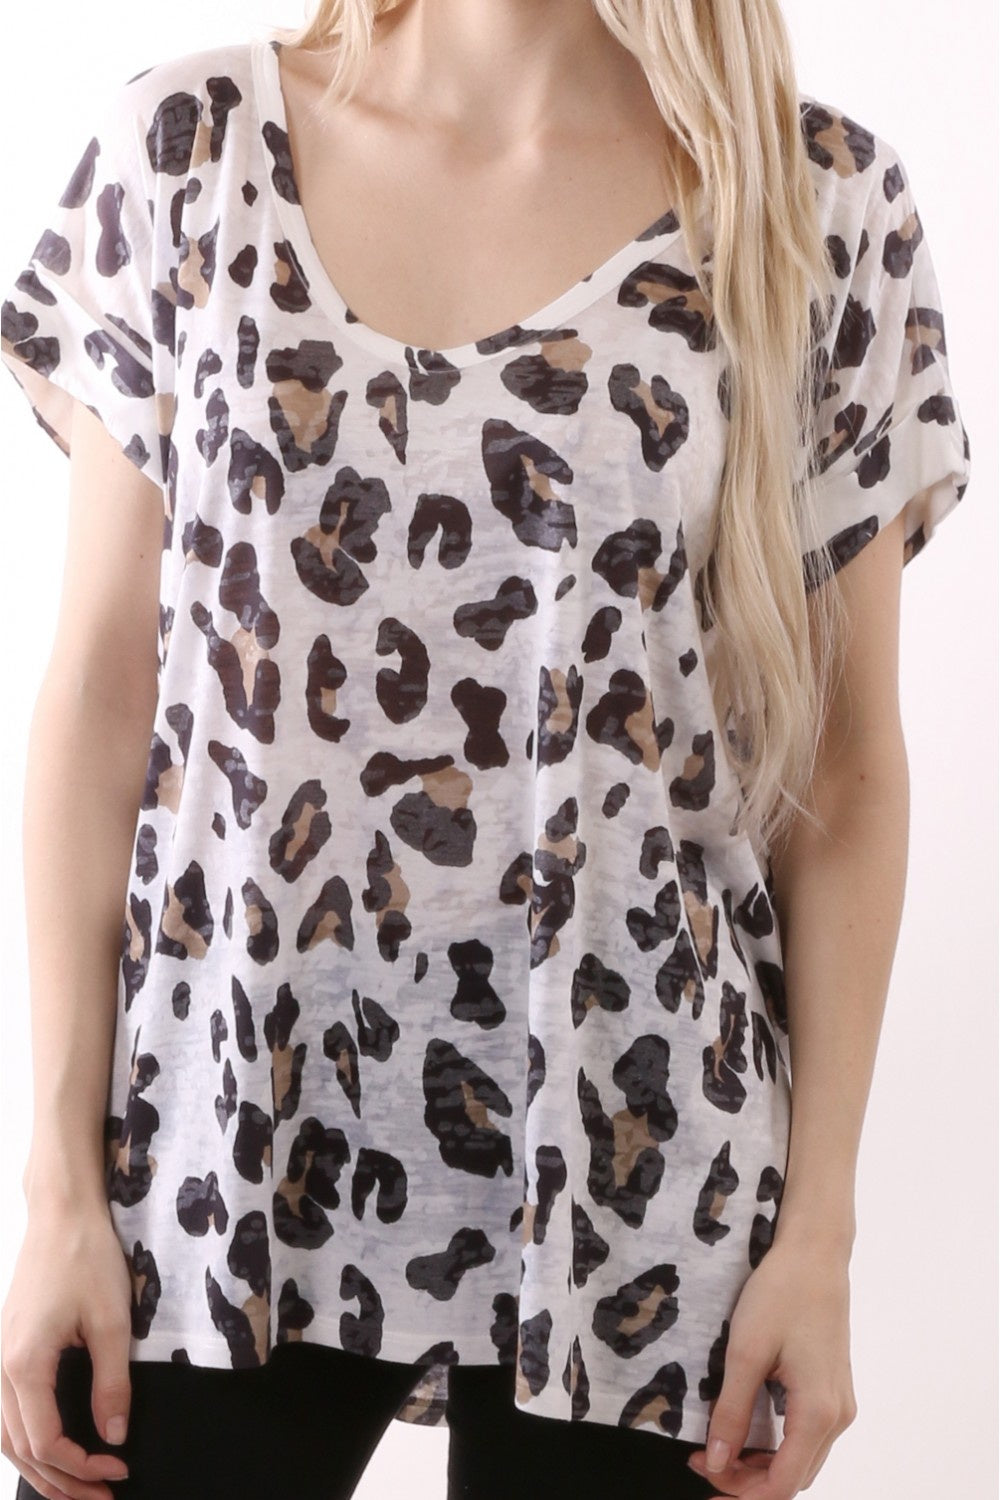 Sublimated Animal Print S/S V-Neck Top - White